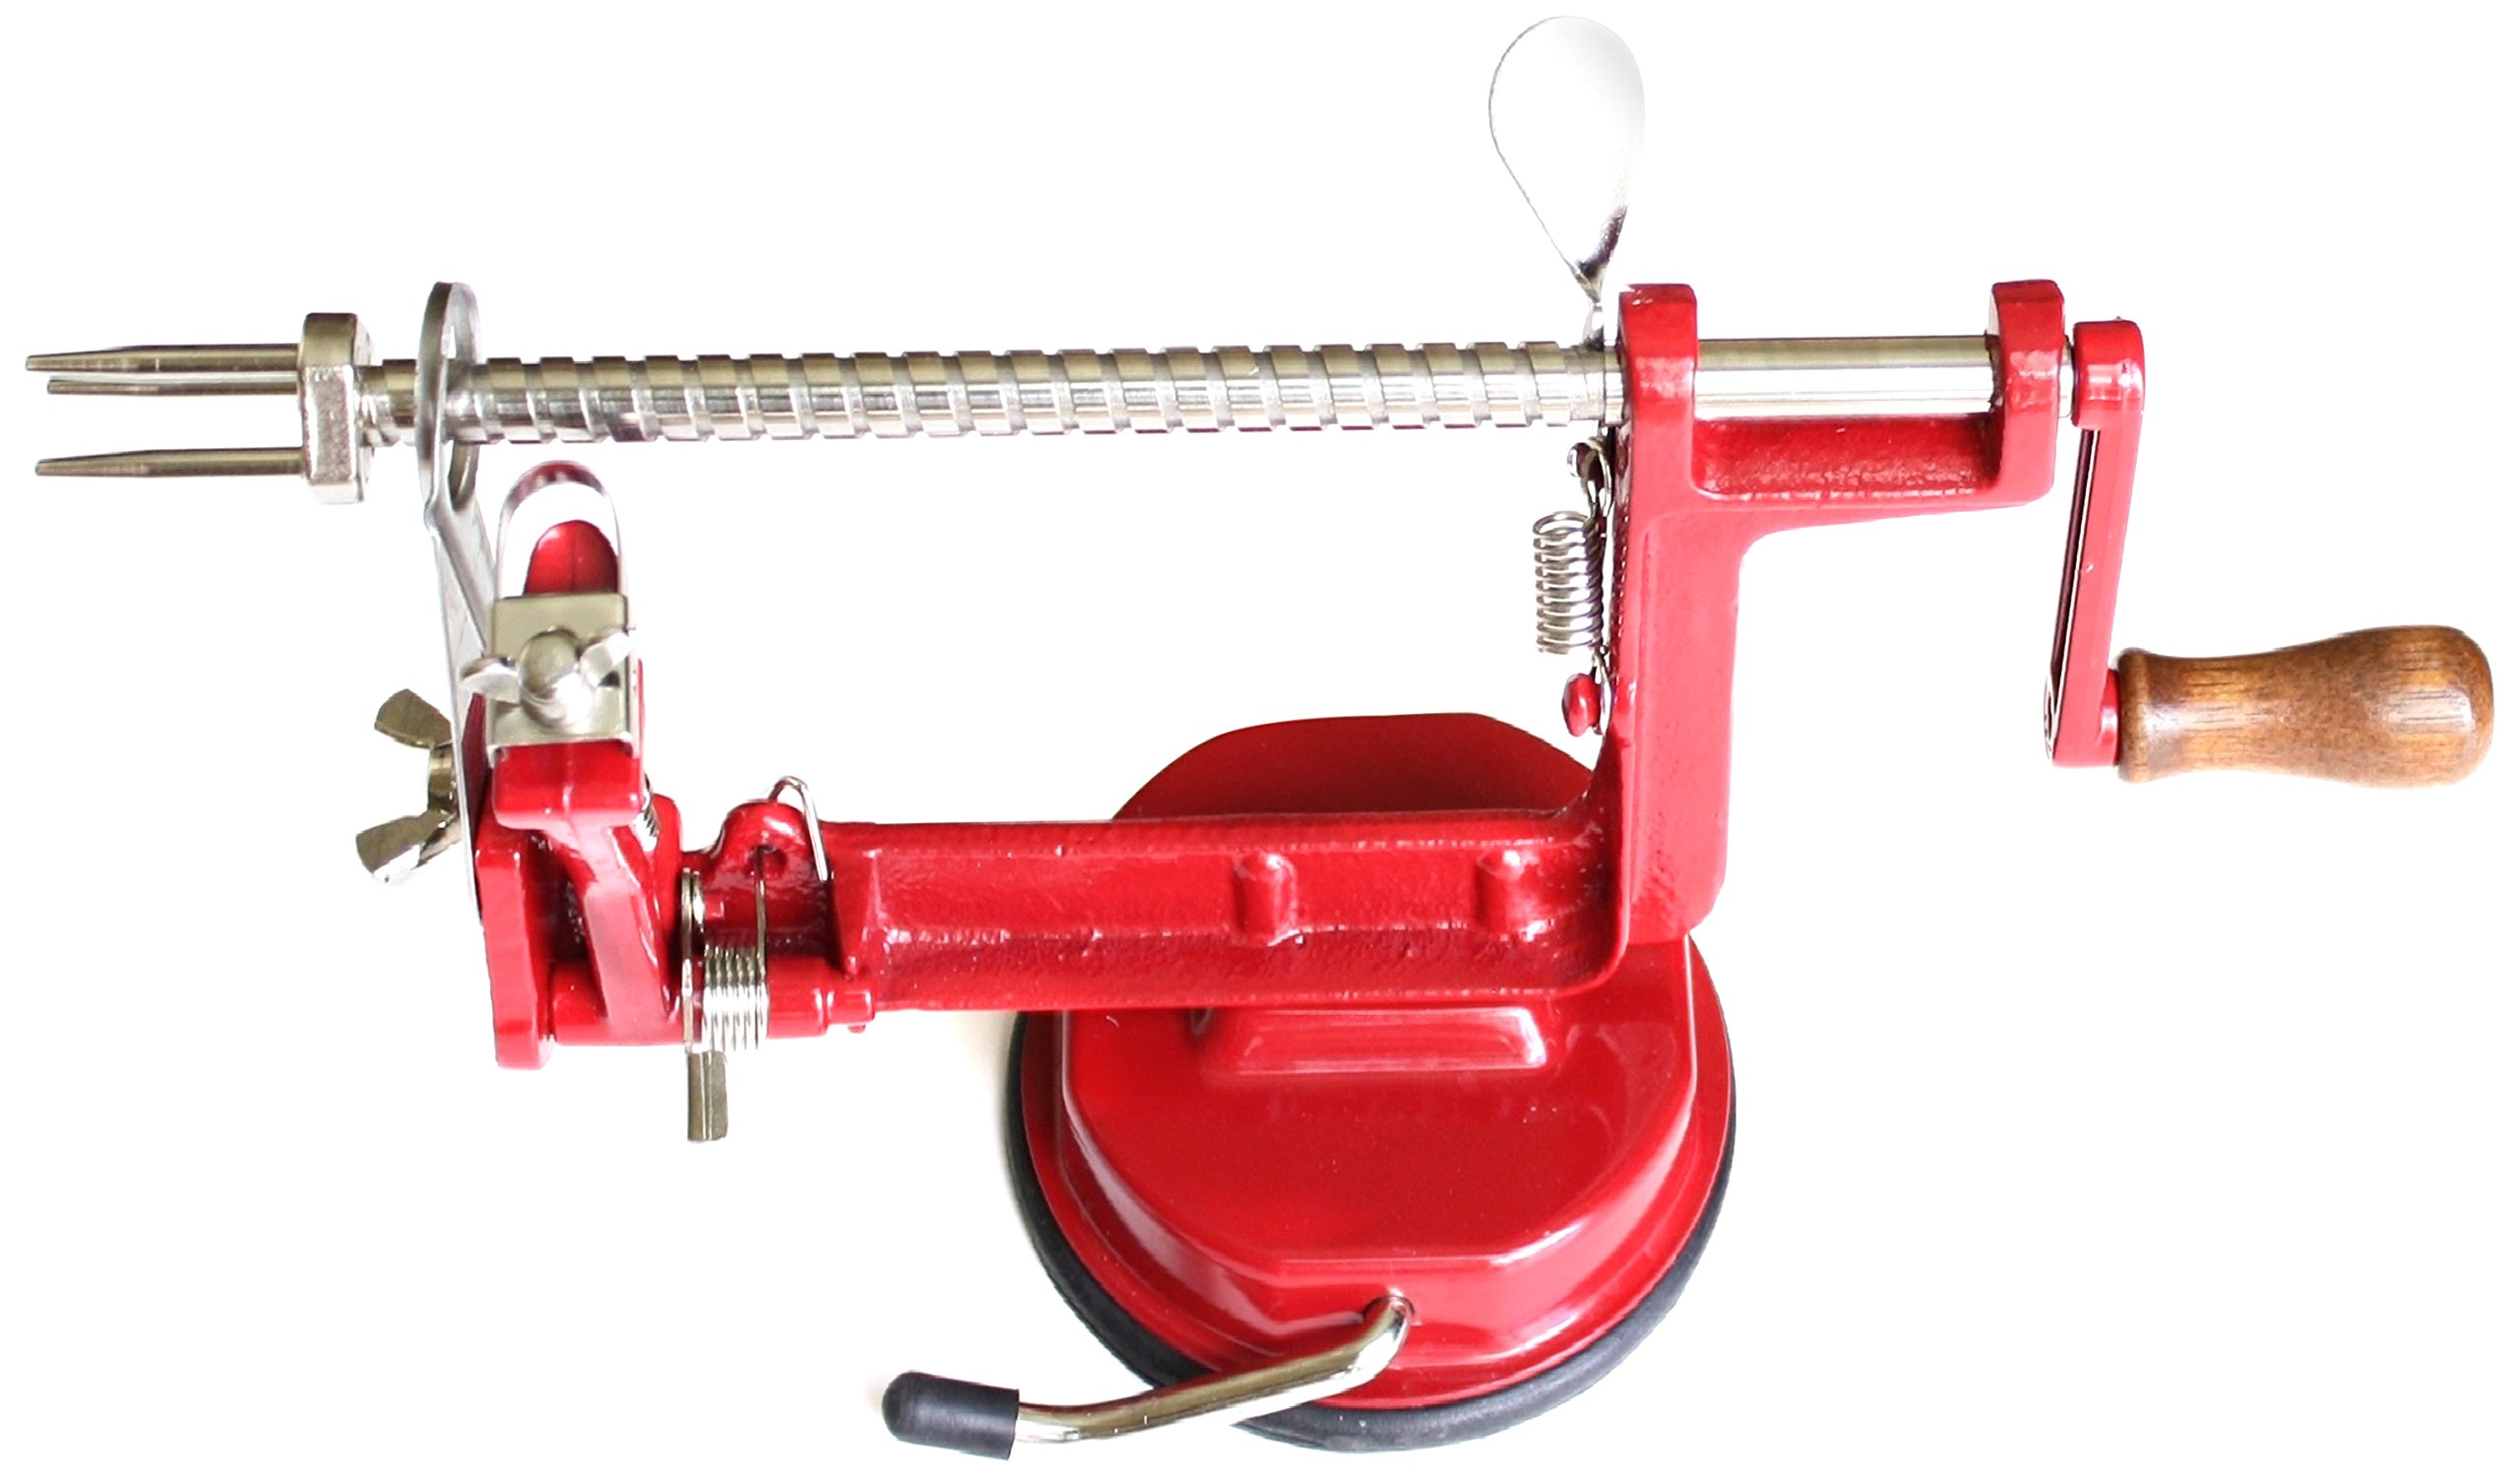 Cook N Home Apple and Potato Peeler/Corer with Suction Base, Red